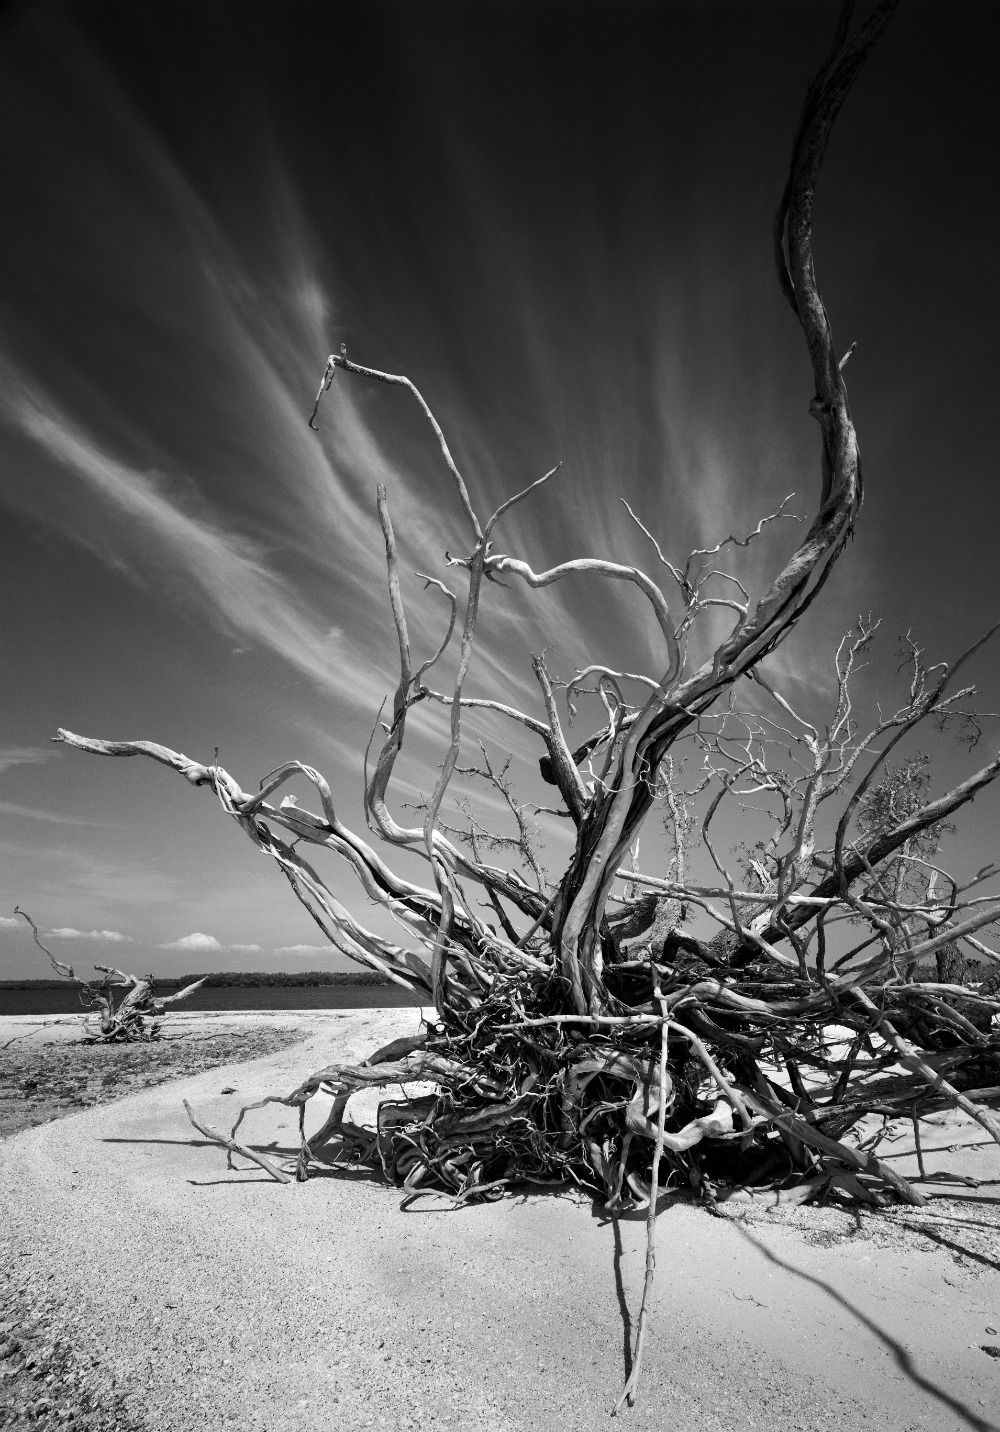 Clyde Butcher Black And White Landscape Nature Photography Black And White Photography